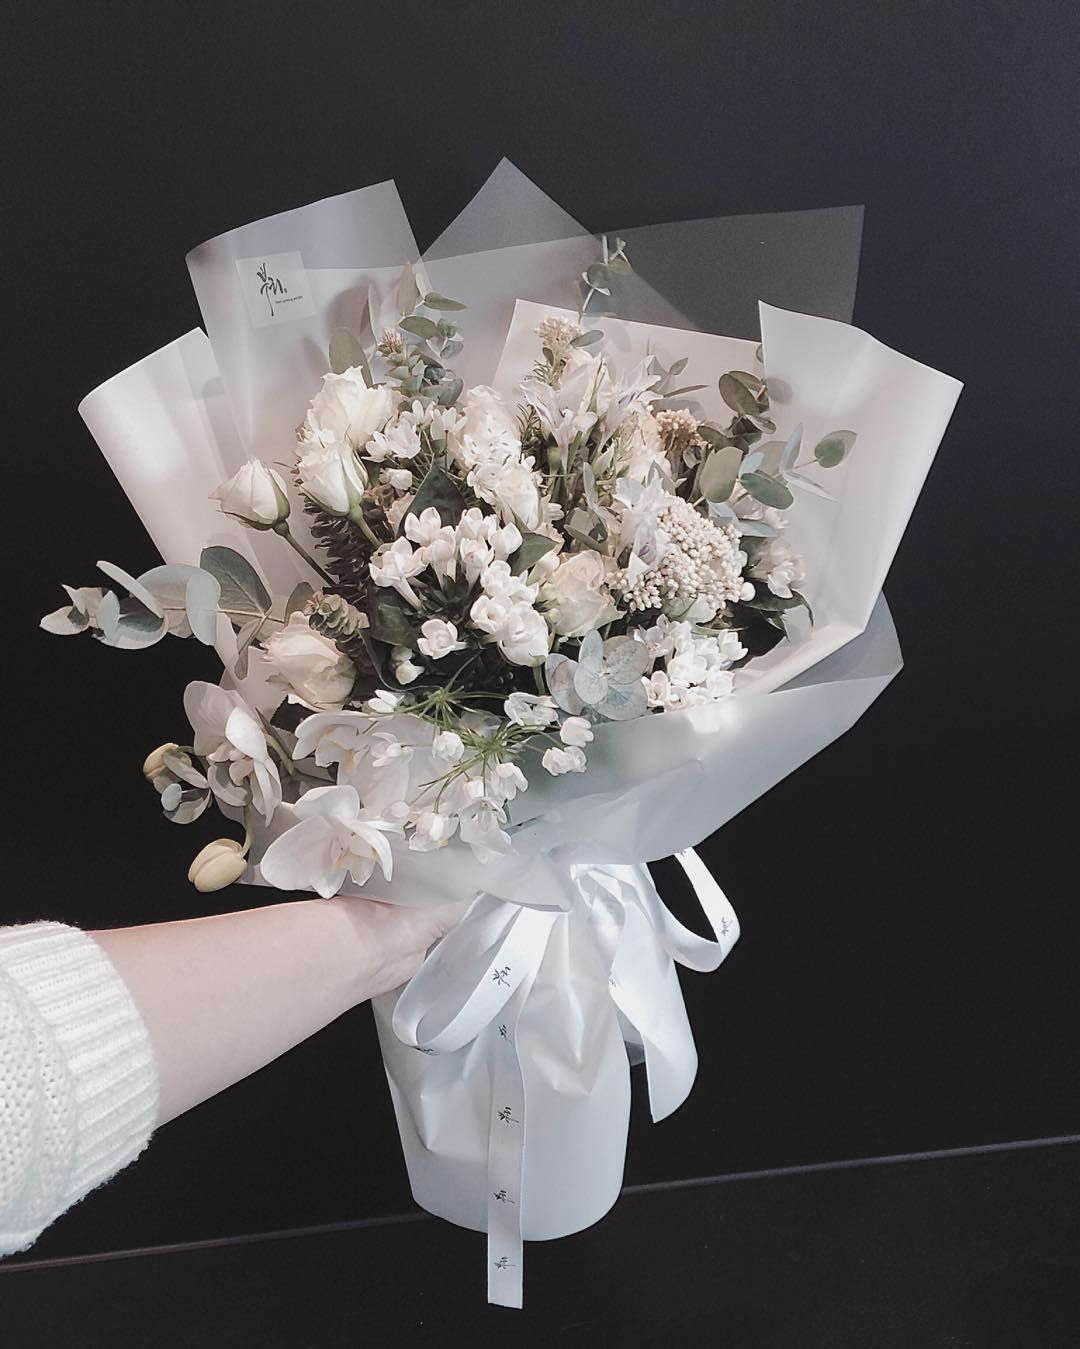 Hand tied bouquet vaness florist bouquet korean artistic hand tied bouquet vaness florist bouquet korean artistic elegent flower bouquet dhlflorist Image collections